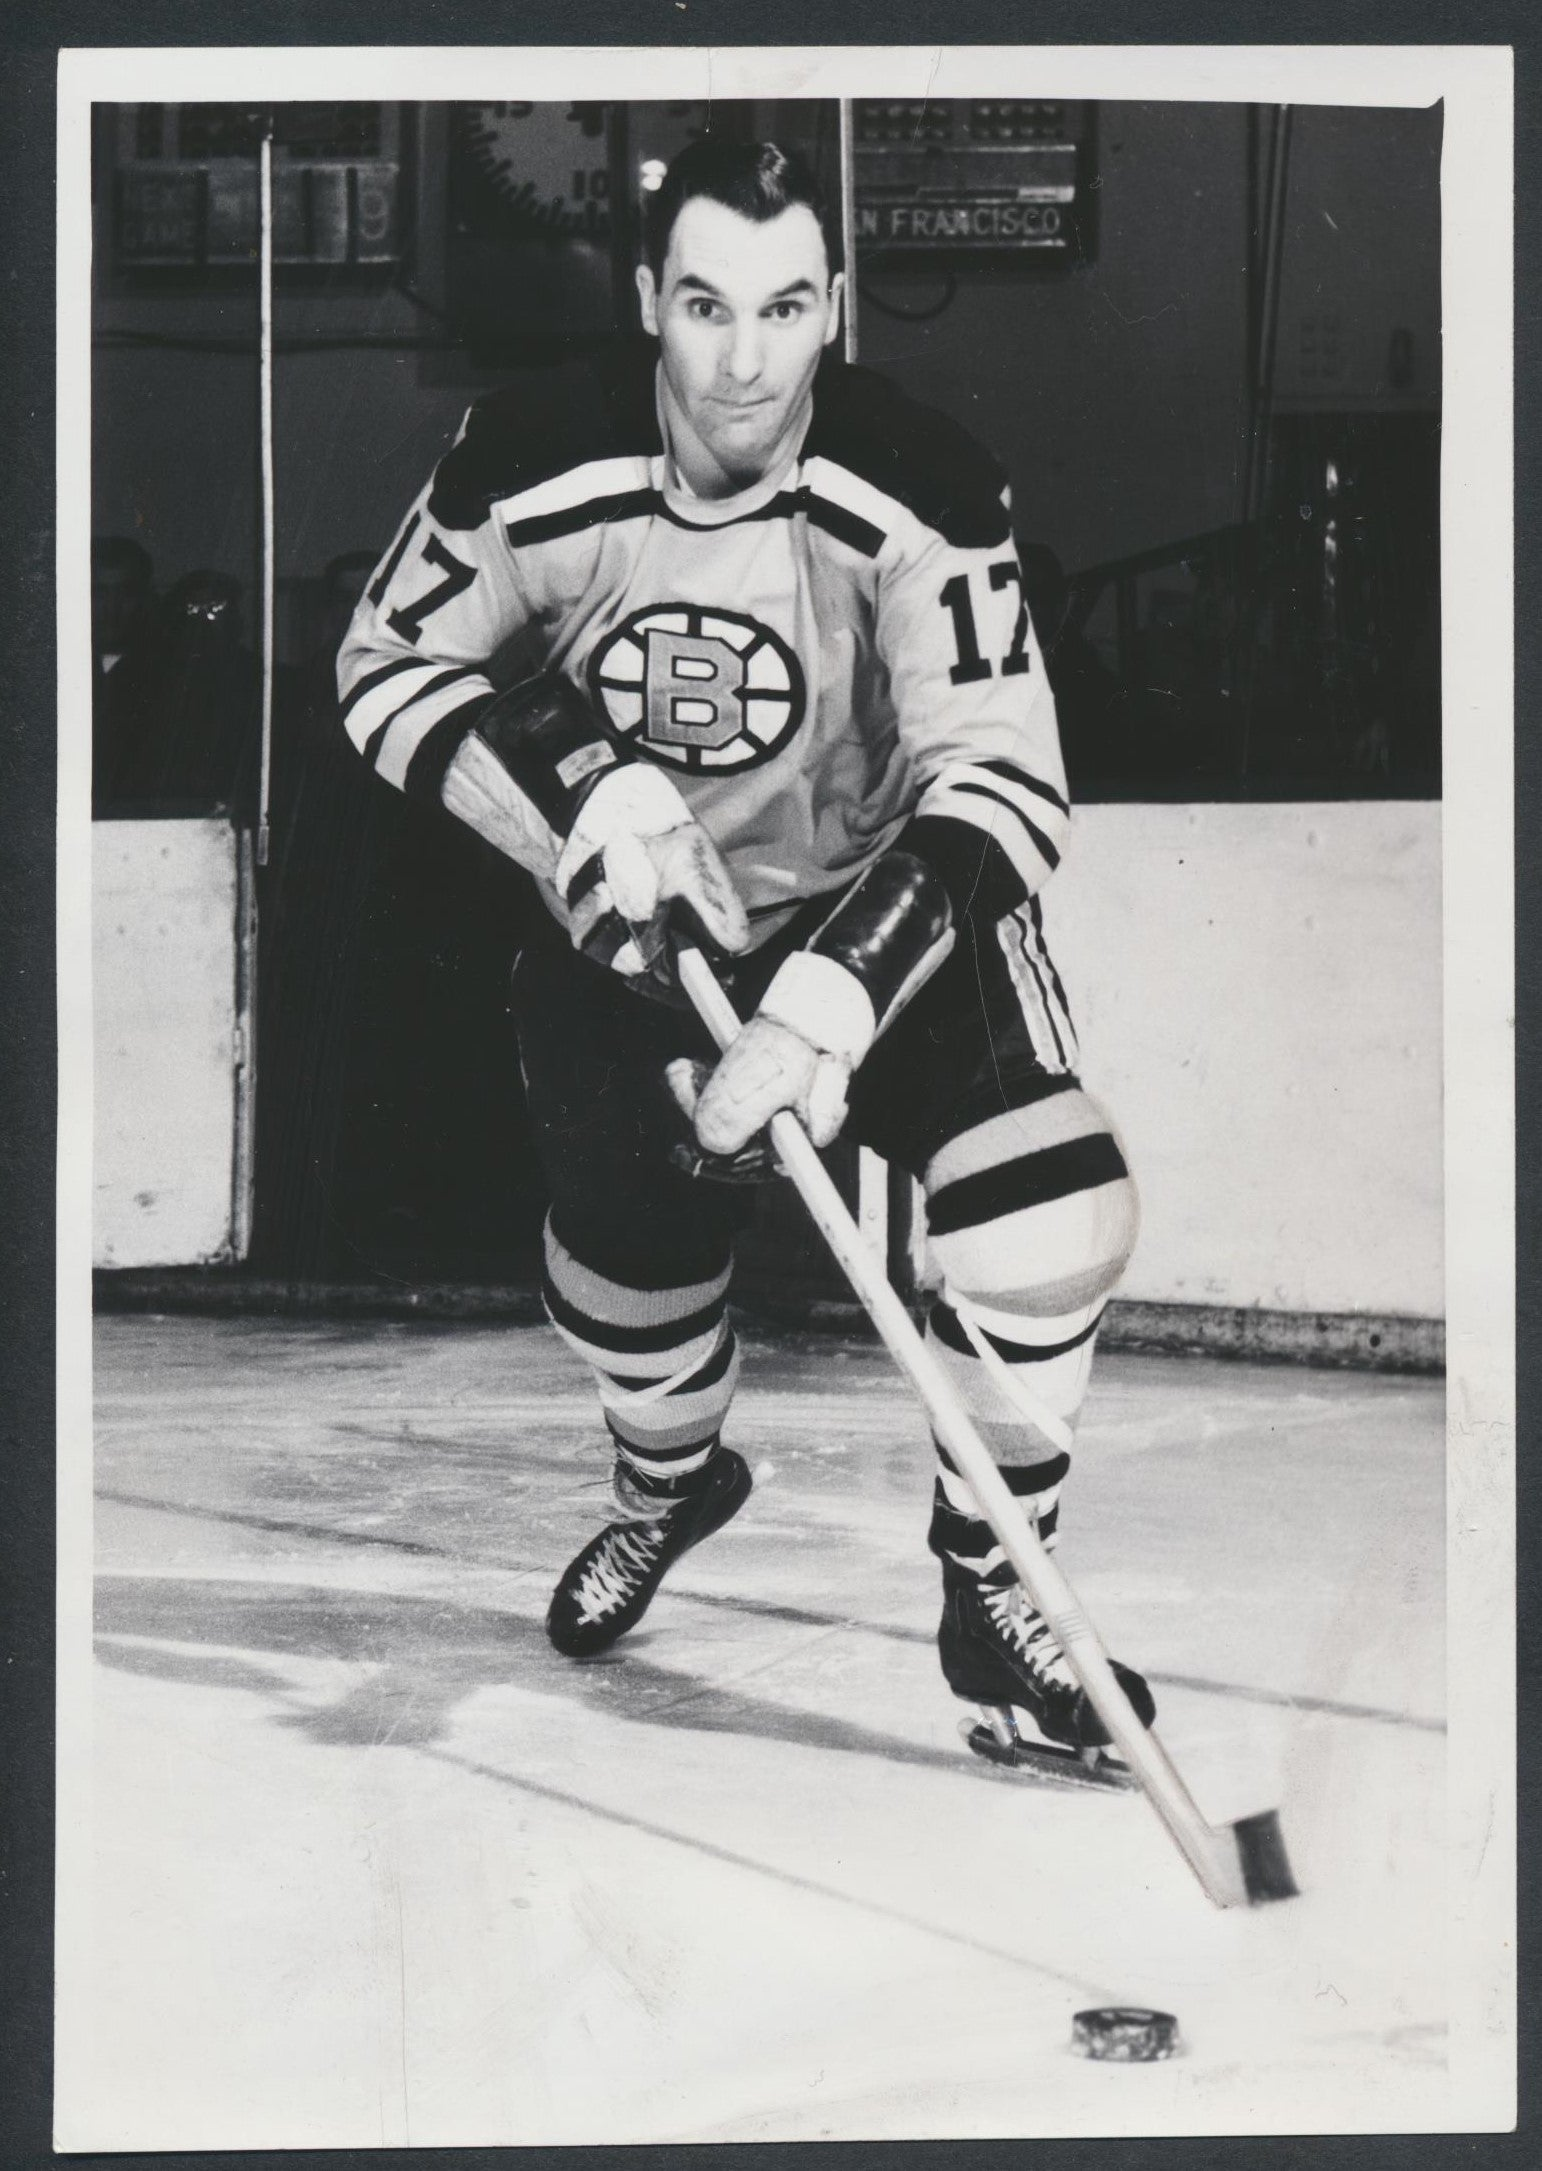 Original Dean Prentice -Boston Bruins   Hockey Press Photo 1963  Vintage NHL Hockey Pic  News Archives